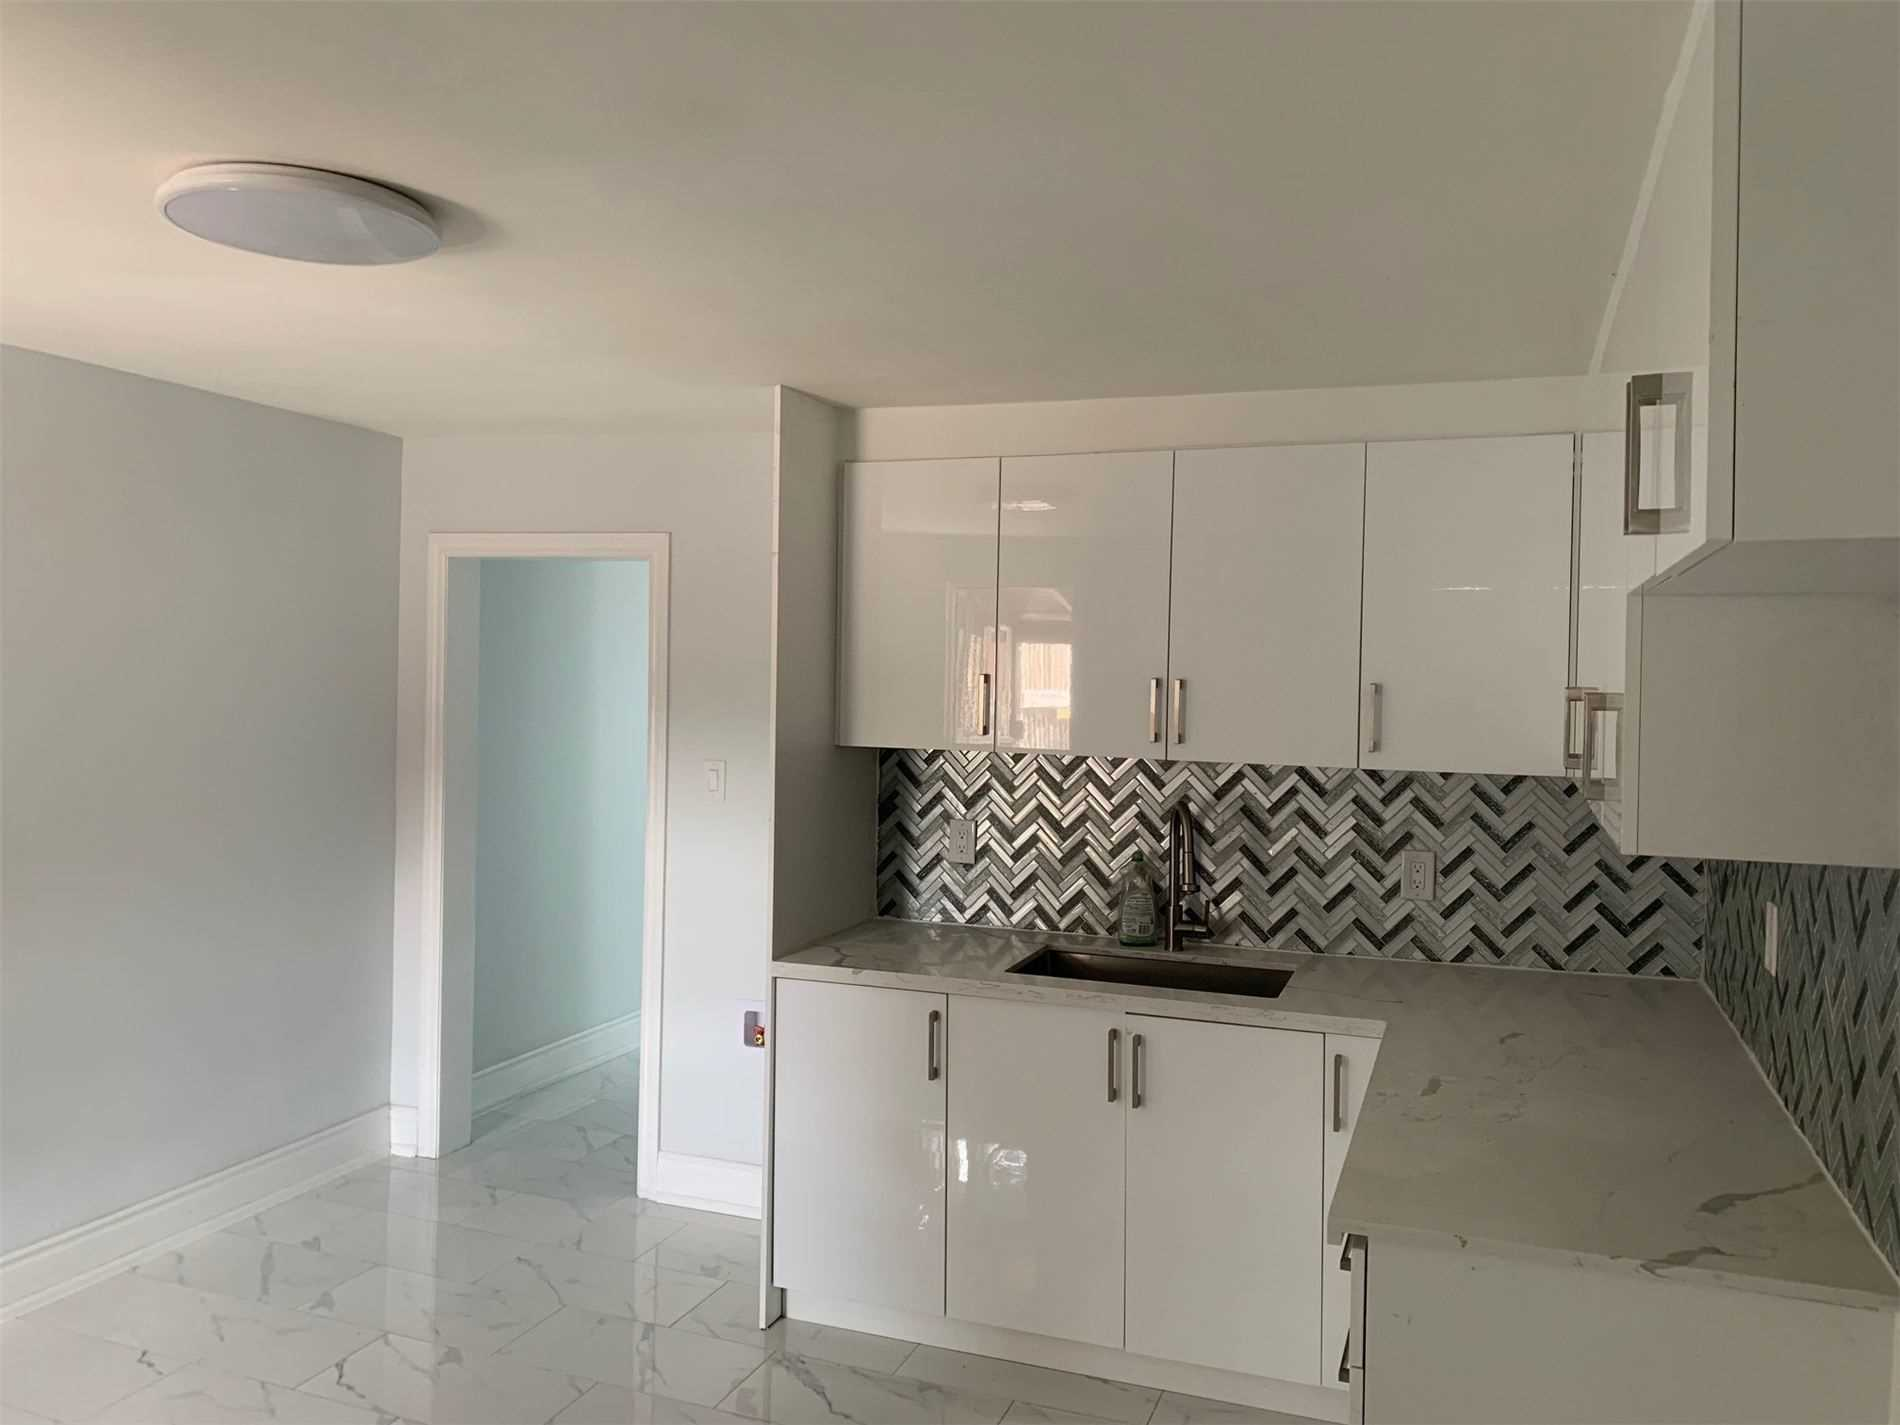 An Opportunity To Rent A Bright & Spacious Three-Bedroom Apartment On The Second Floor. In Downtown Toronto, Fantastic Location, Bus Out Front. Minutes To Subway Station. It Has No Living Room. Suitable For 3 Working Professional Or Student.